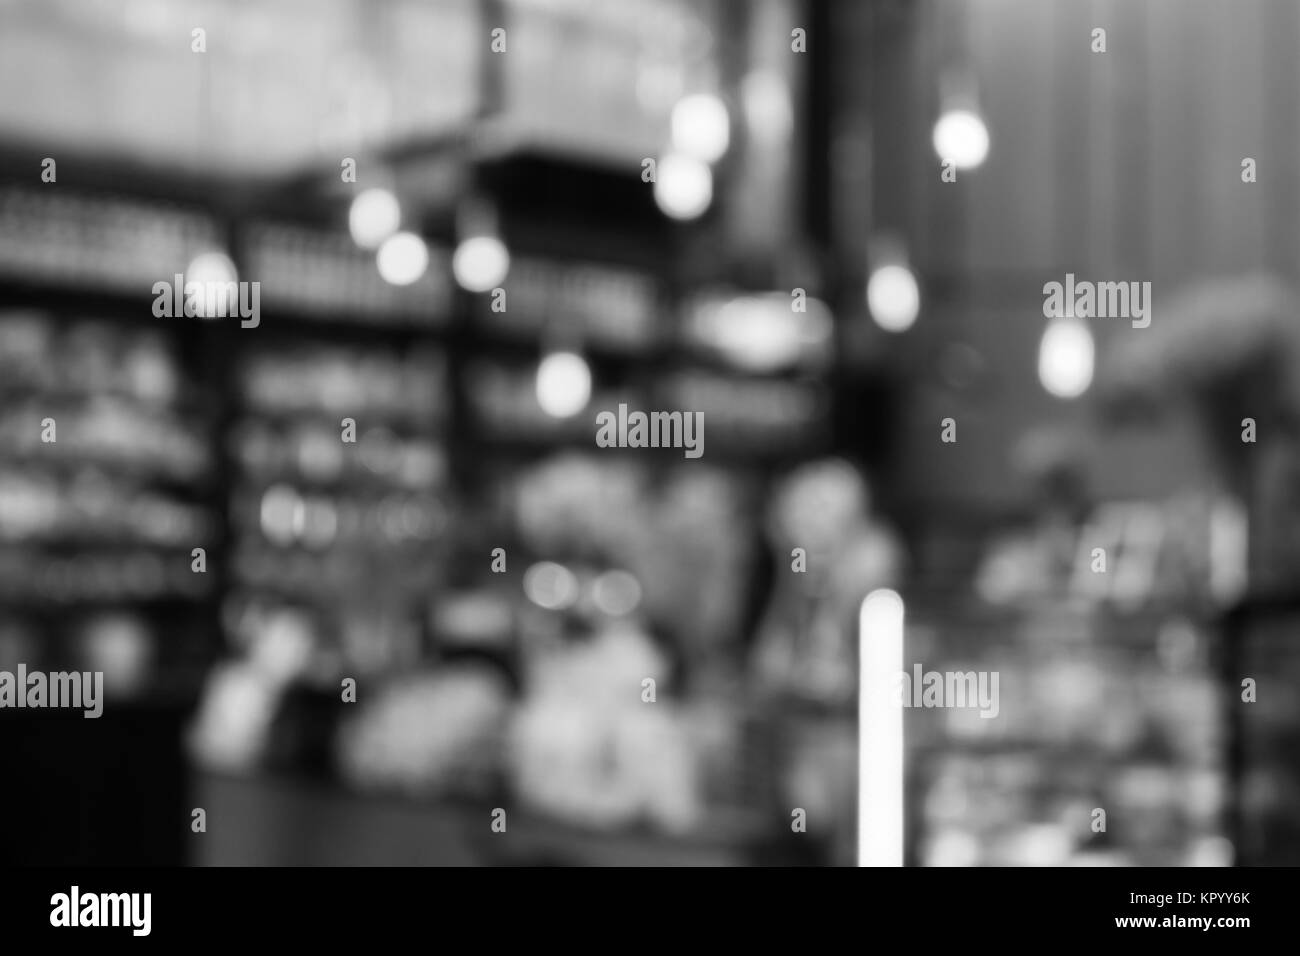 Coffee shop blurred background with black and white tone - Stock Image